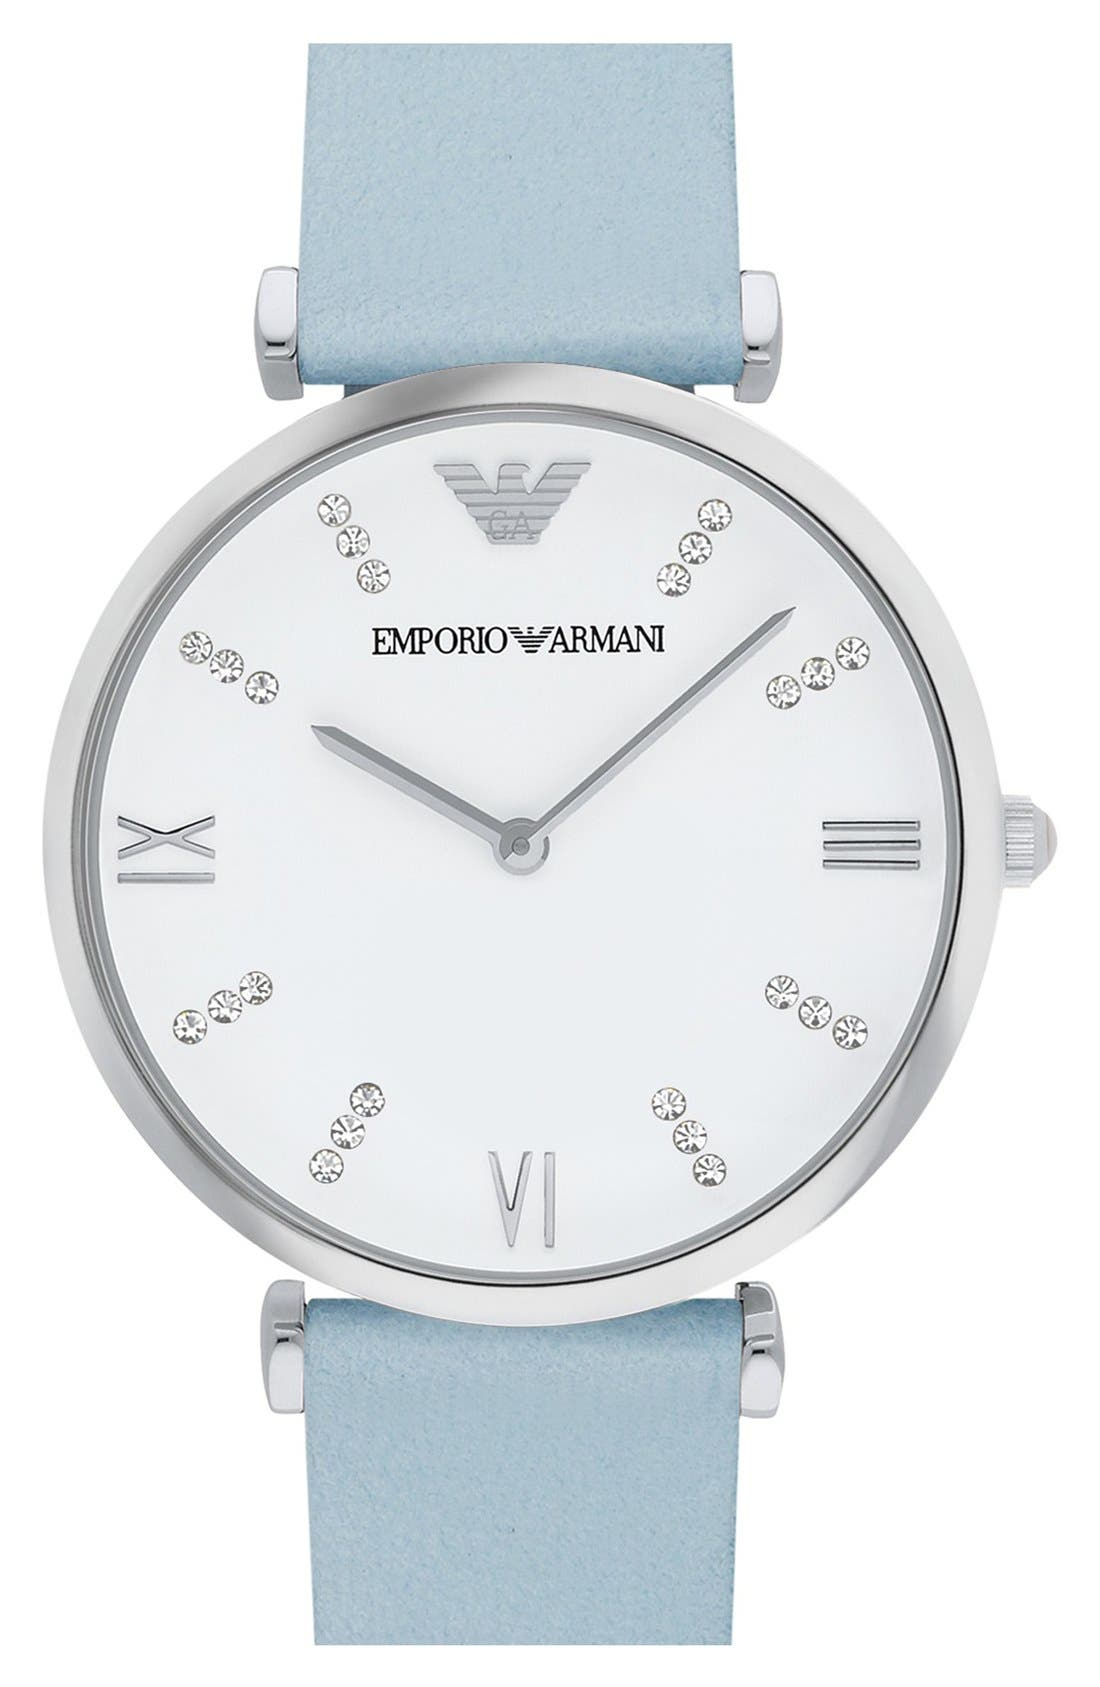 Main Image - Emporio Armani 'Retro' Leather Strap Watch, 32mm